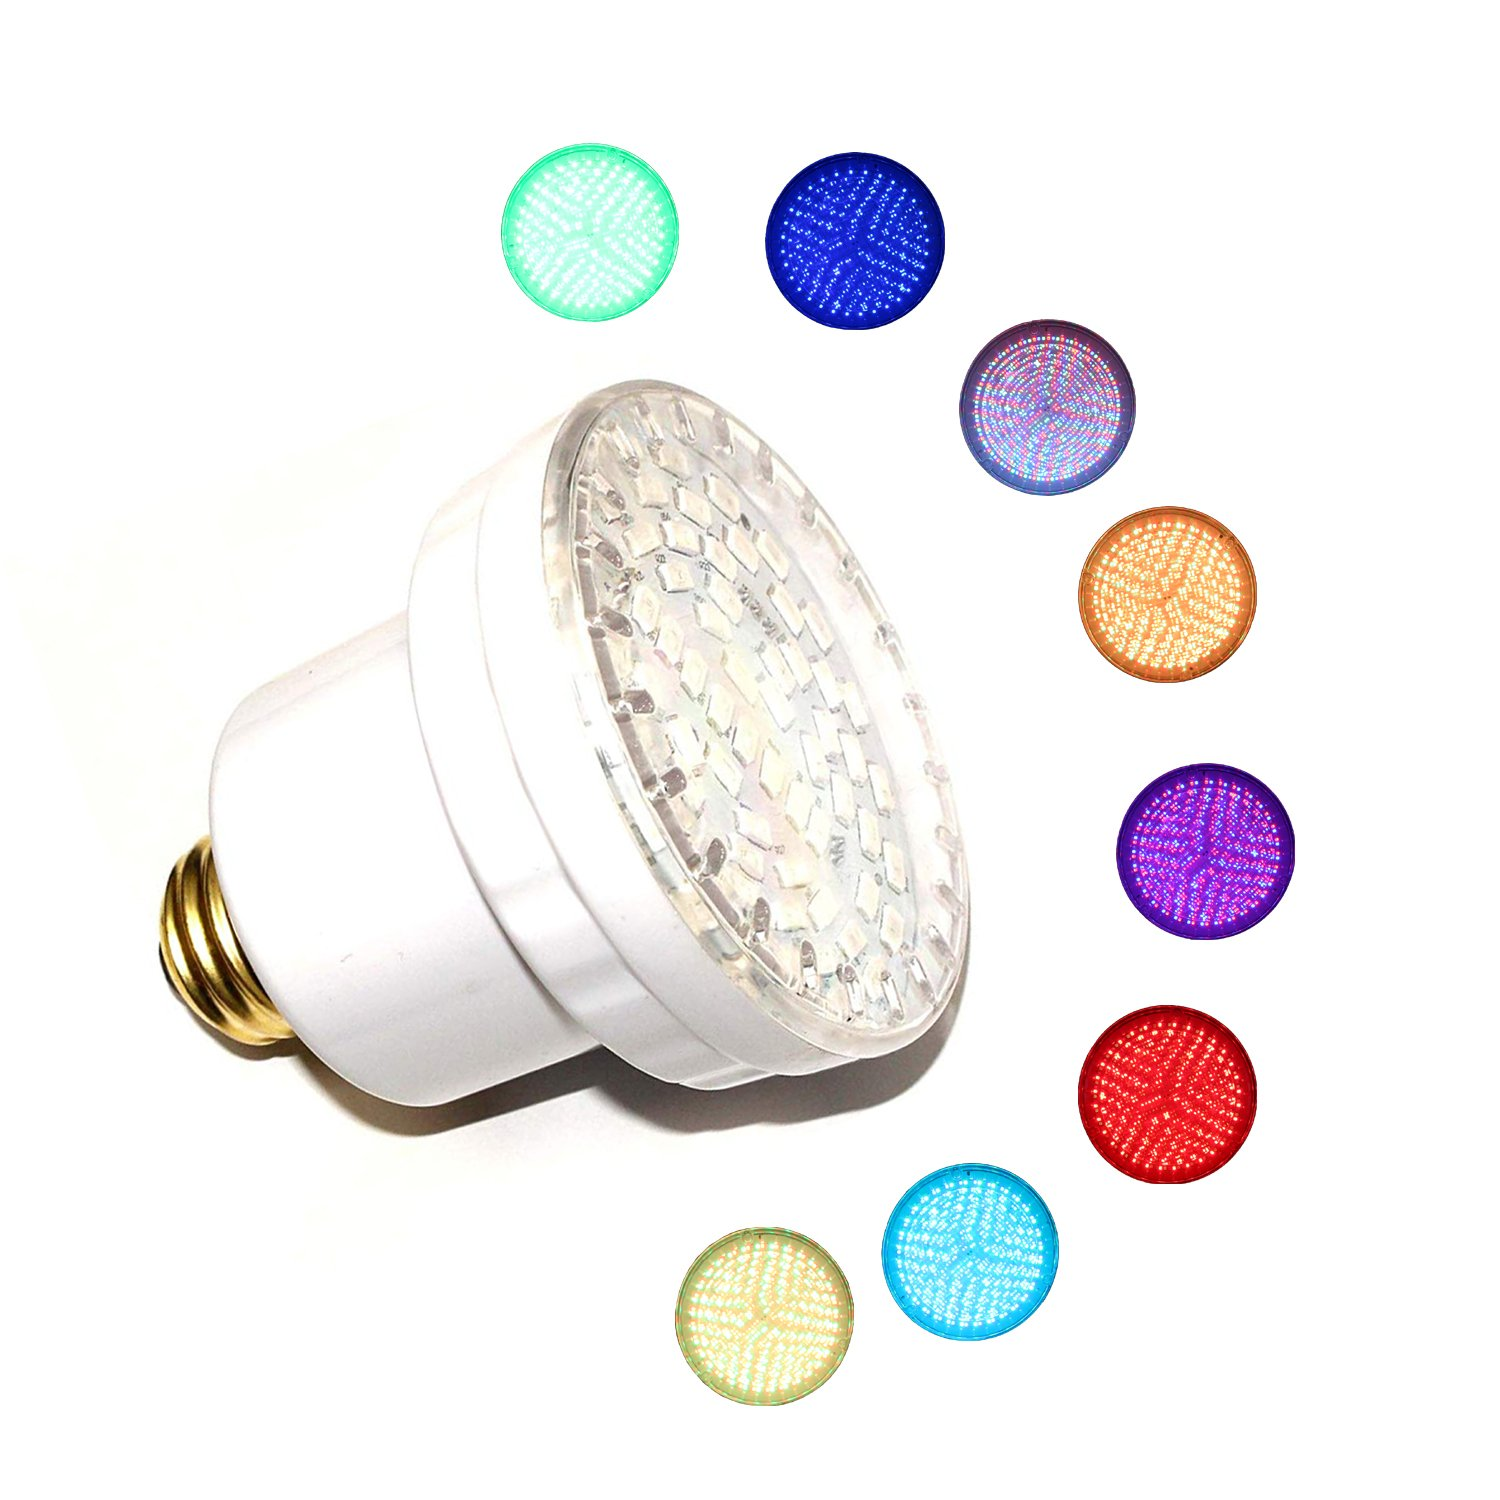 LAMPAOUS LED SPA Bulb, 15 Watt E26 LED Pool Bulb, 5 Color Show and 7 Solid Colors LED Hot Tub Replacement Bulb for Pentair and Hayward Under Water Lights Fixture.12VAC Input by LAMPAOUS